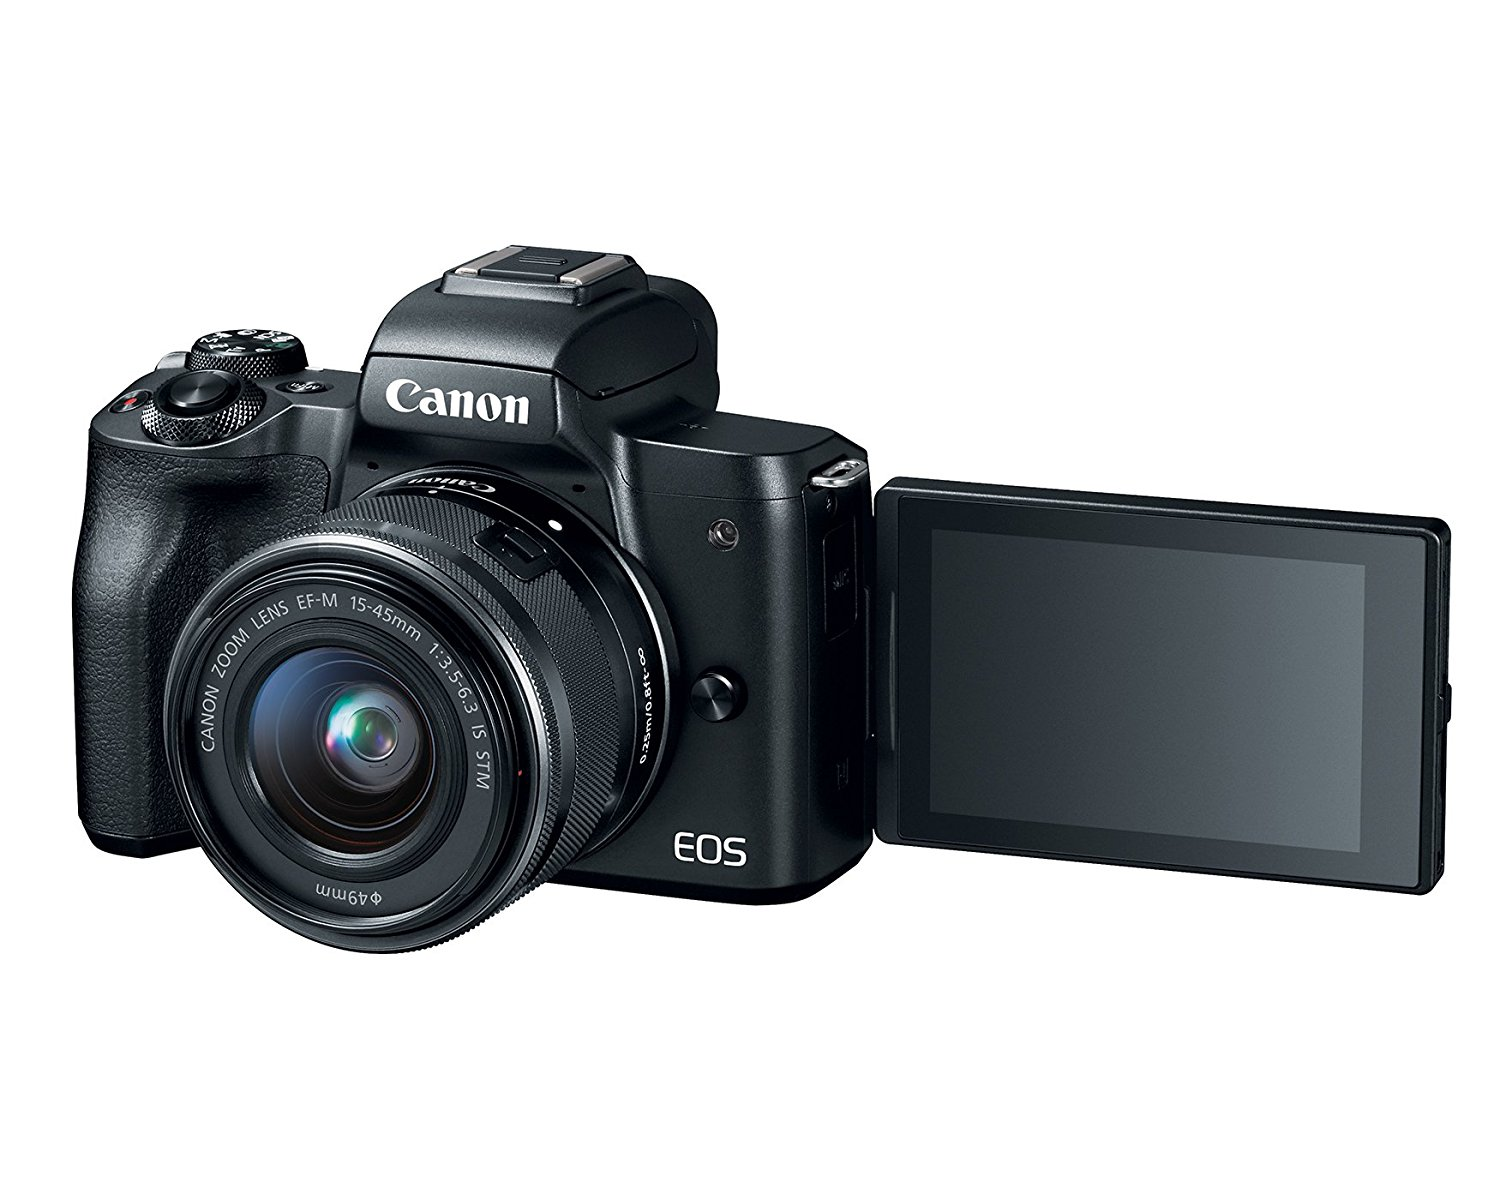 Designed for vlogging, professional videography and photography. A multi-purpose camera!